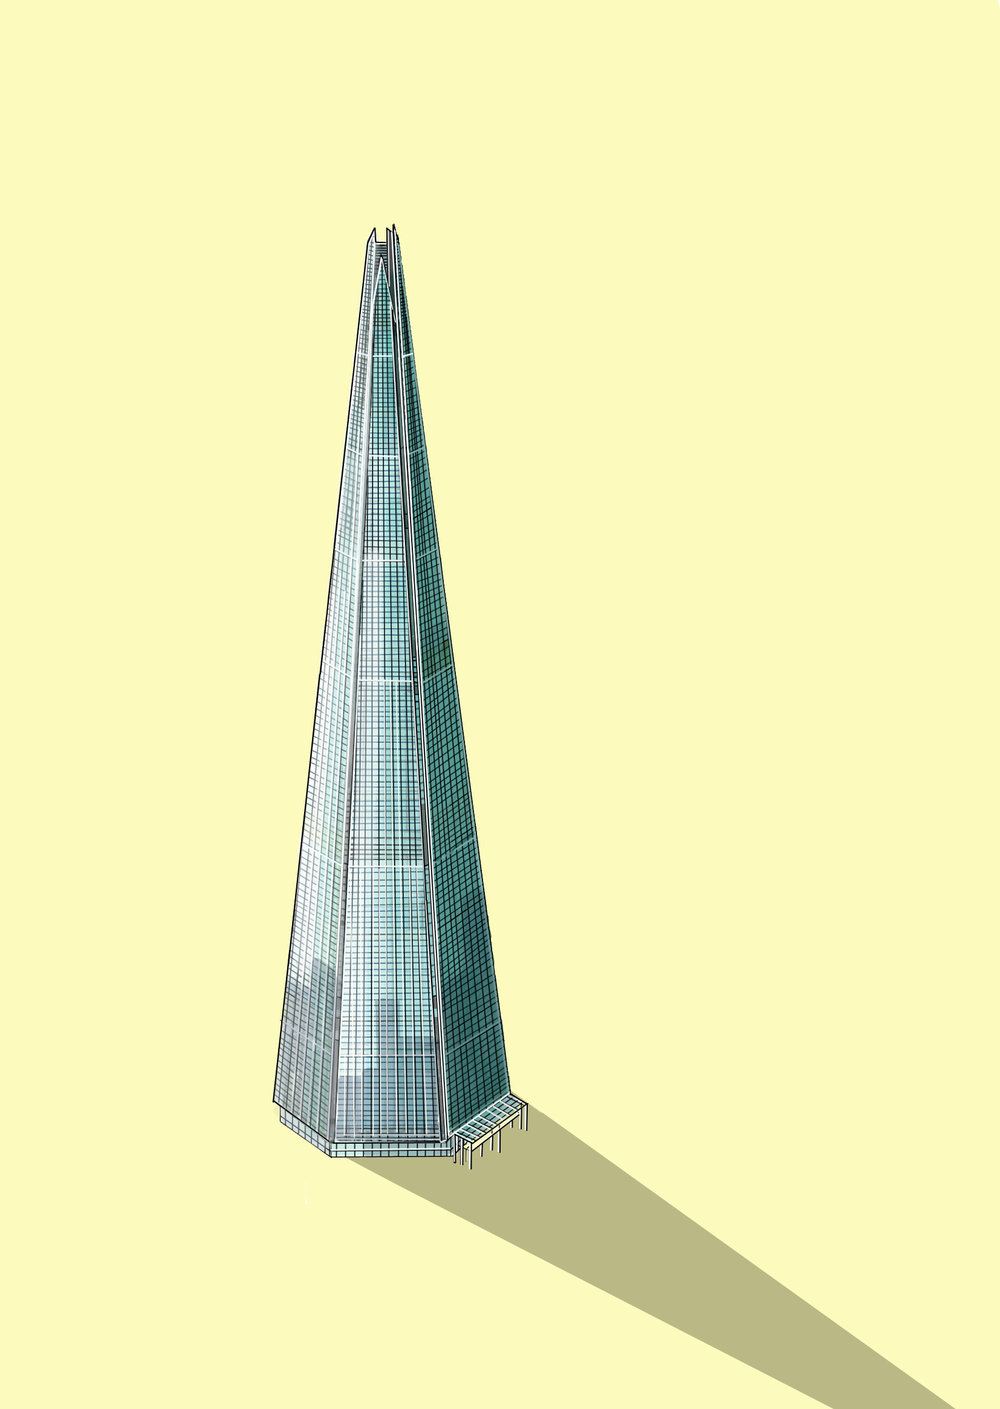 The Shard Illustration by Katherine Baxter